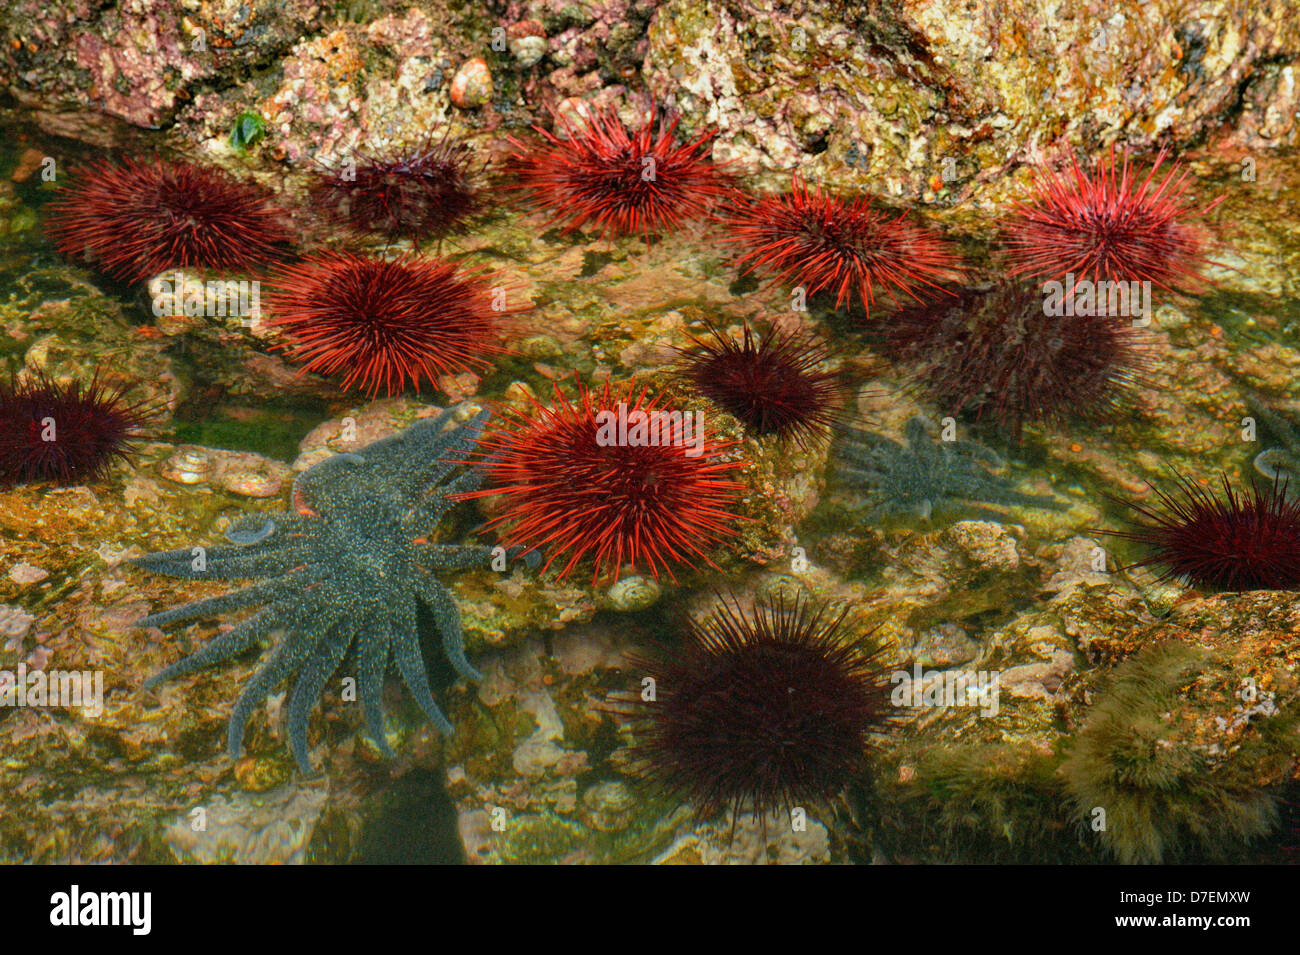 Intertidal organisms at low tide red sea urchins Haida Gwaii Queen Charlotte Islands Gwaii Haanas NP British Columbia - Stock Image